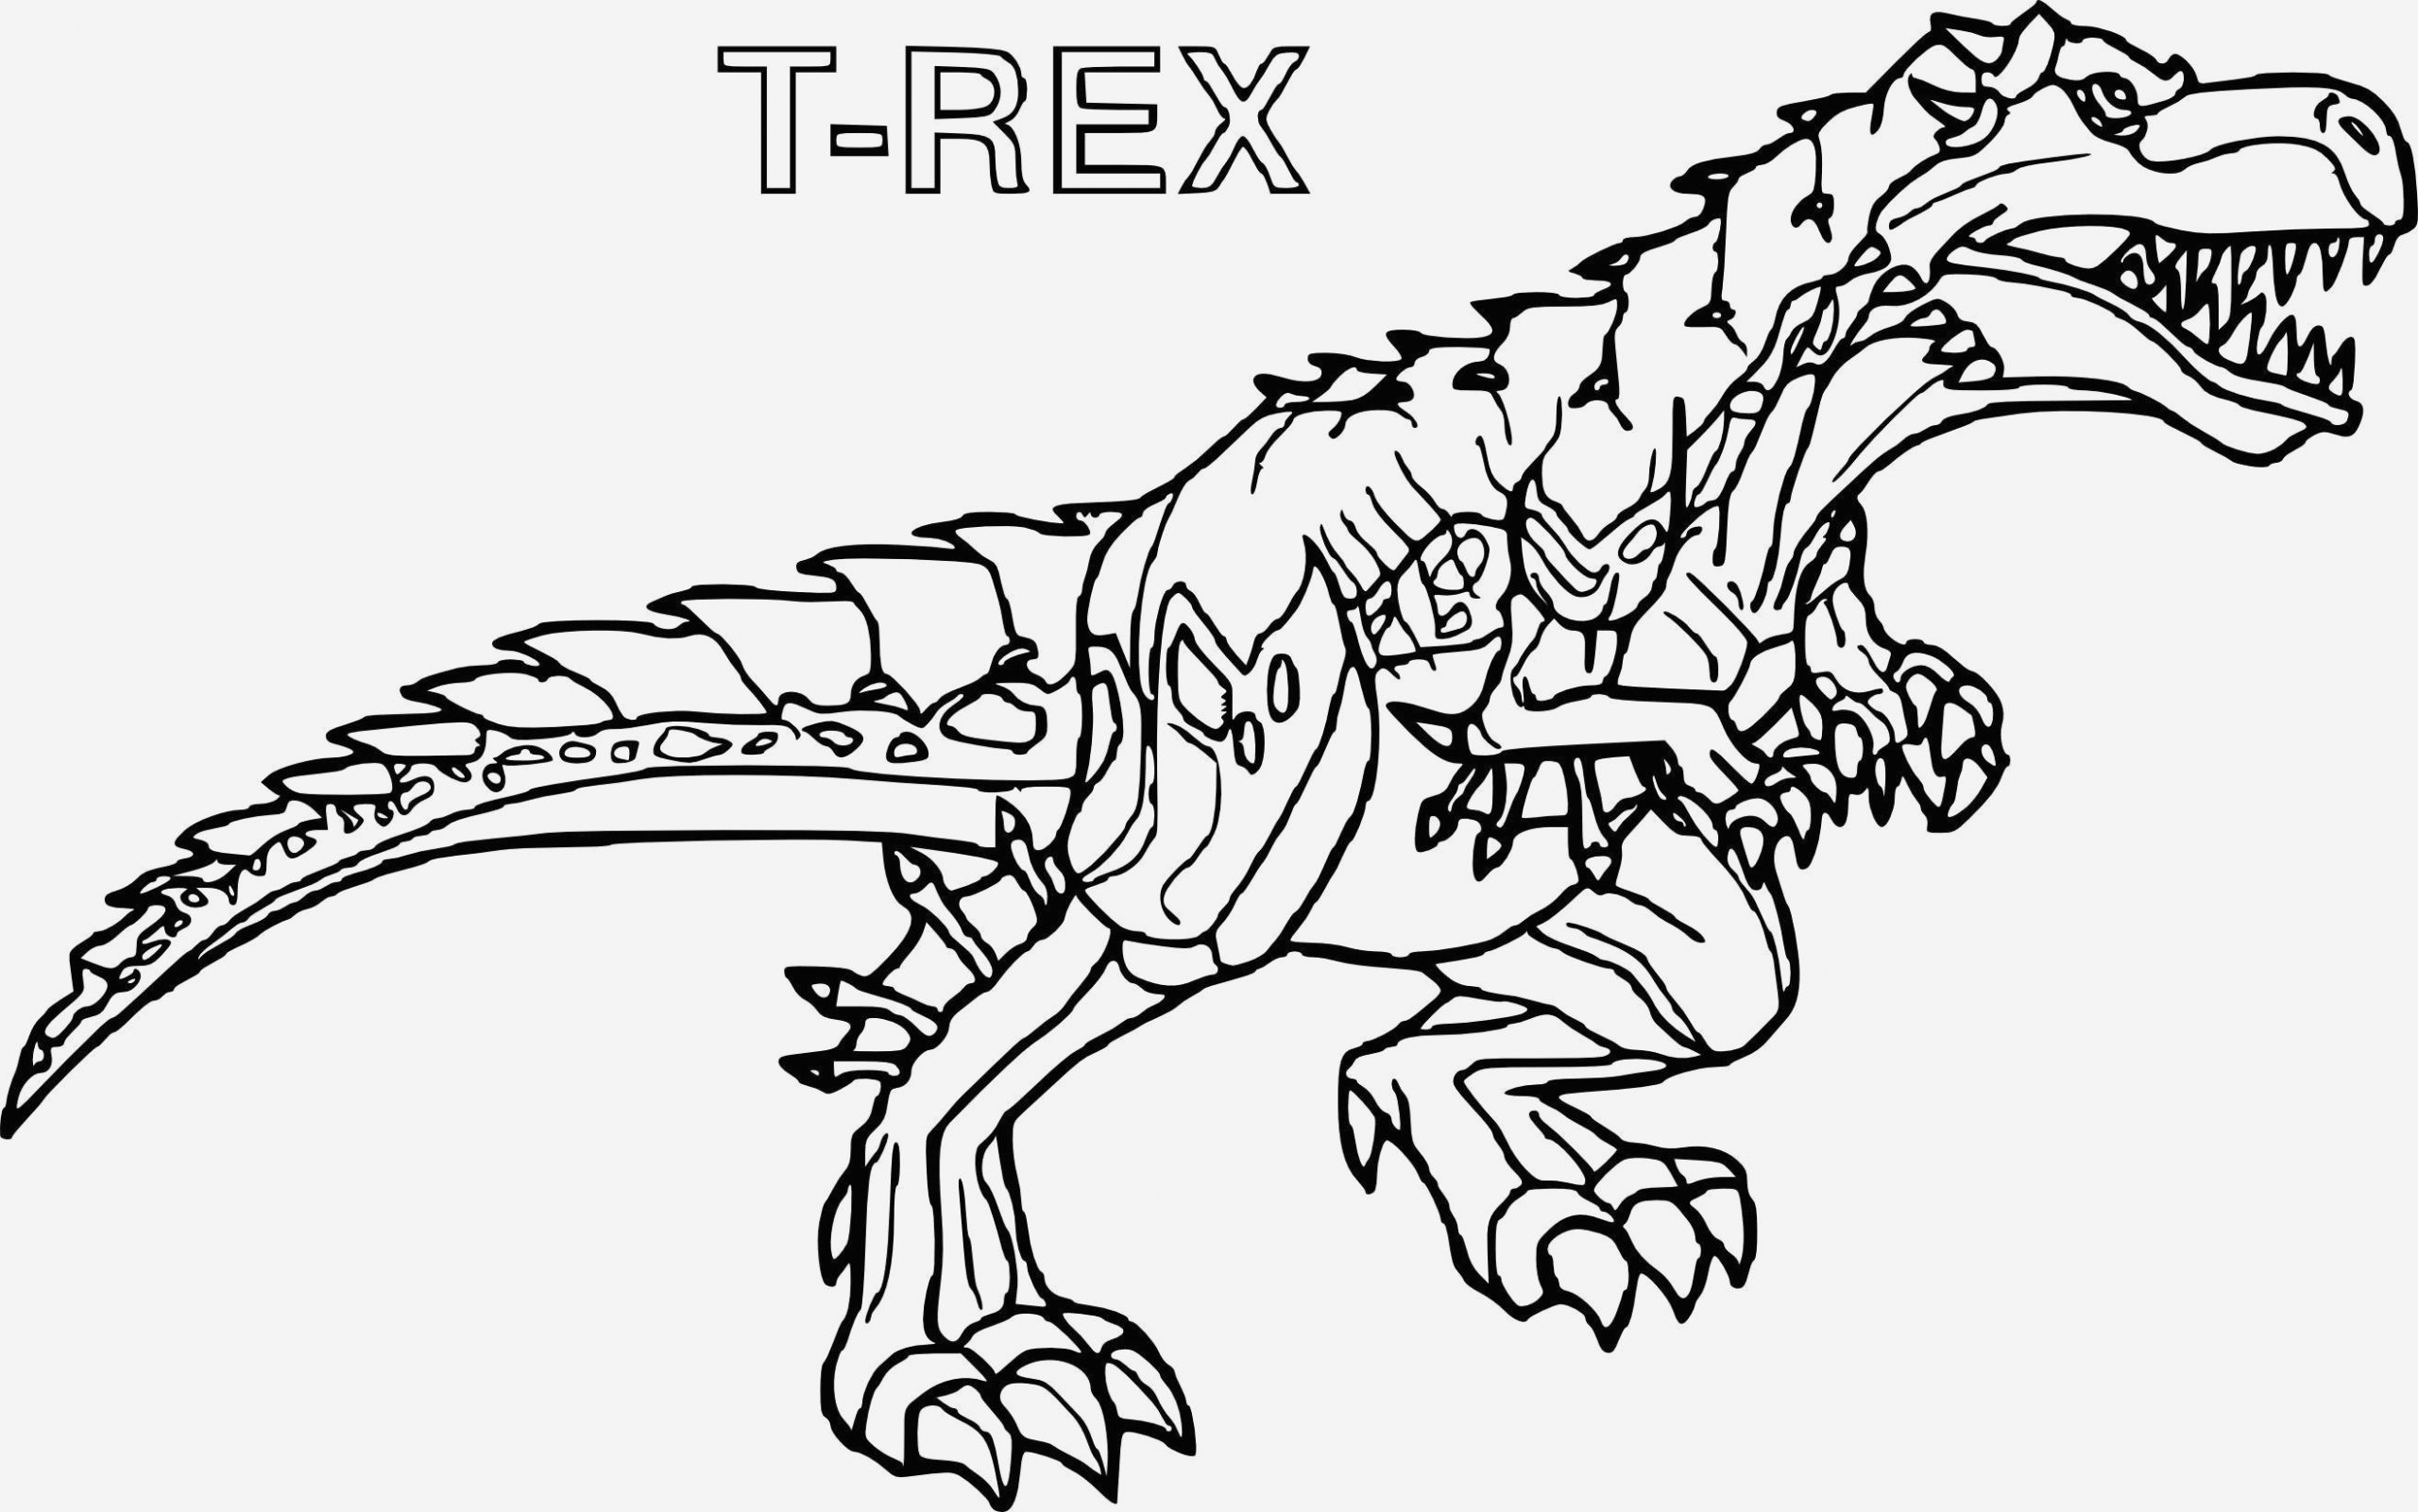 Coloriage Dinosaure Tyrannosaure Best Of Coloriage Imprimer Dinosaure Tyrex From Coloriage T Rex Of Coloriage Dinosaure Tyrannosaure